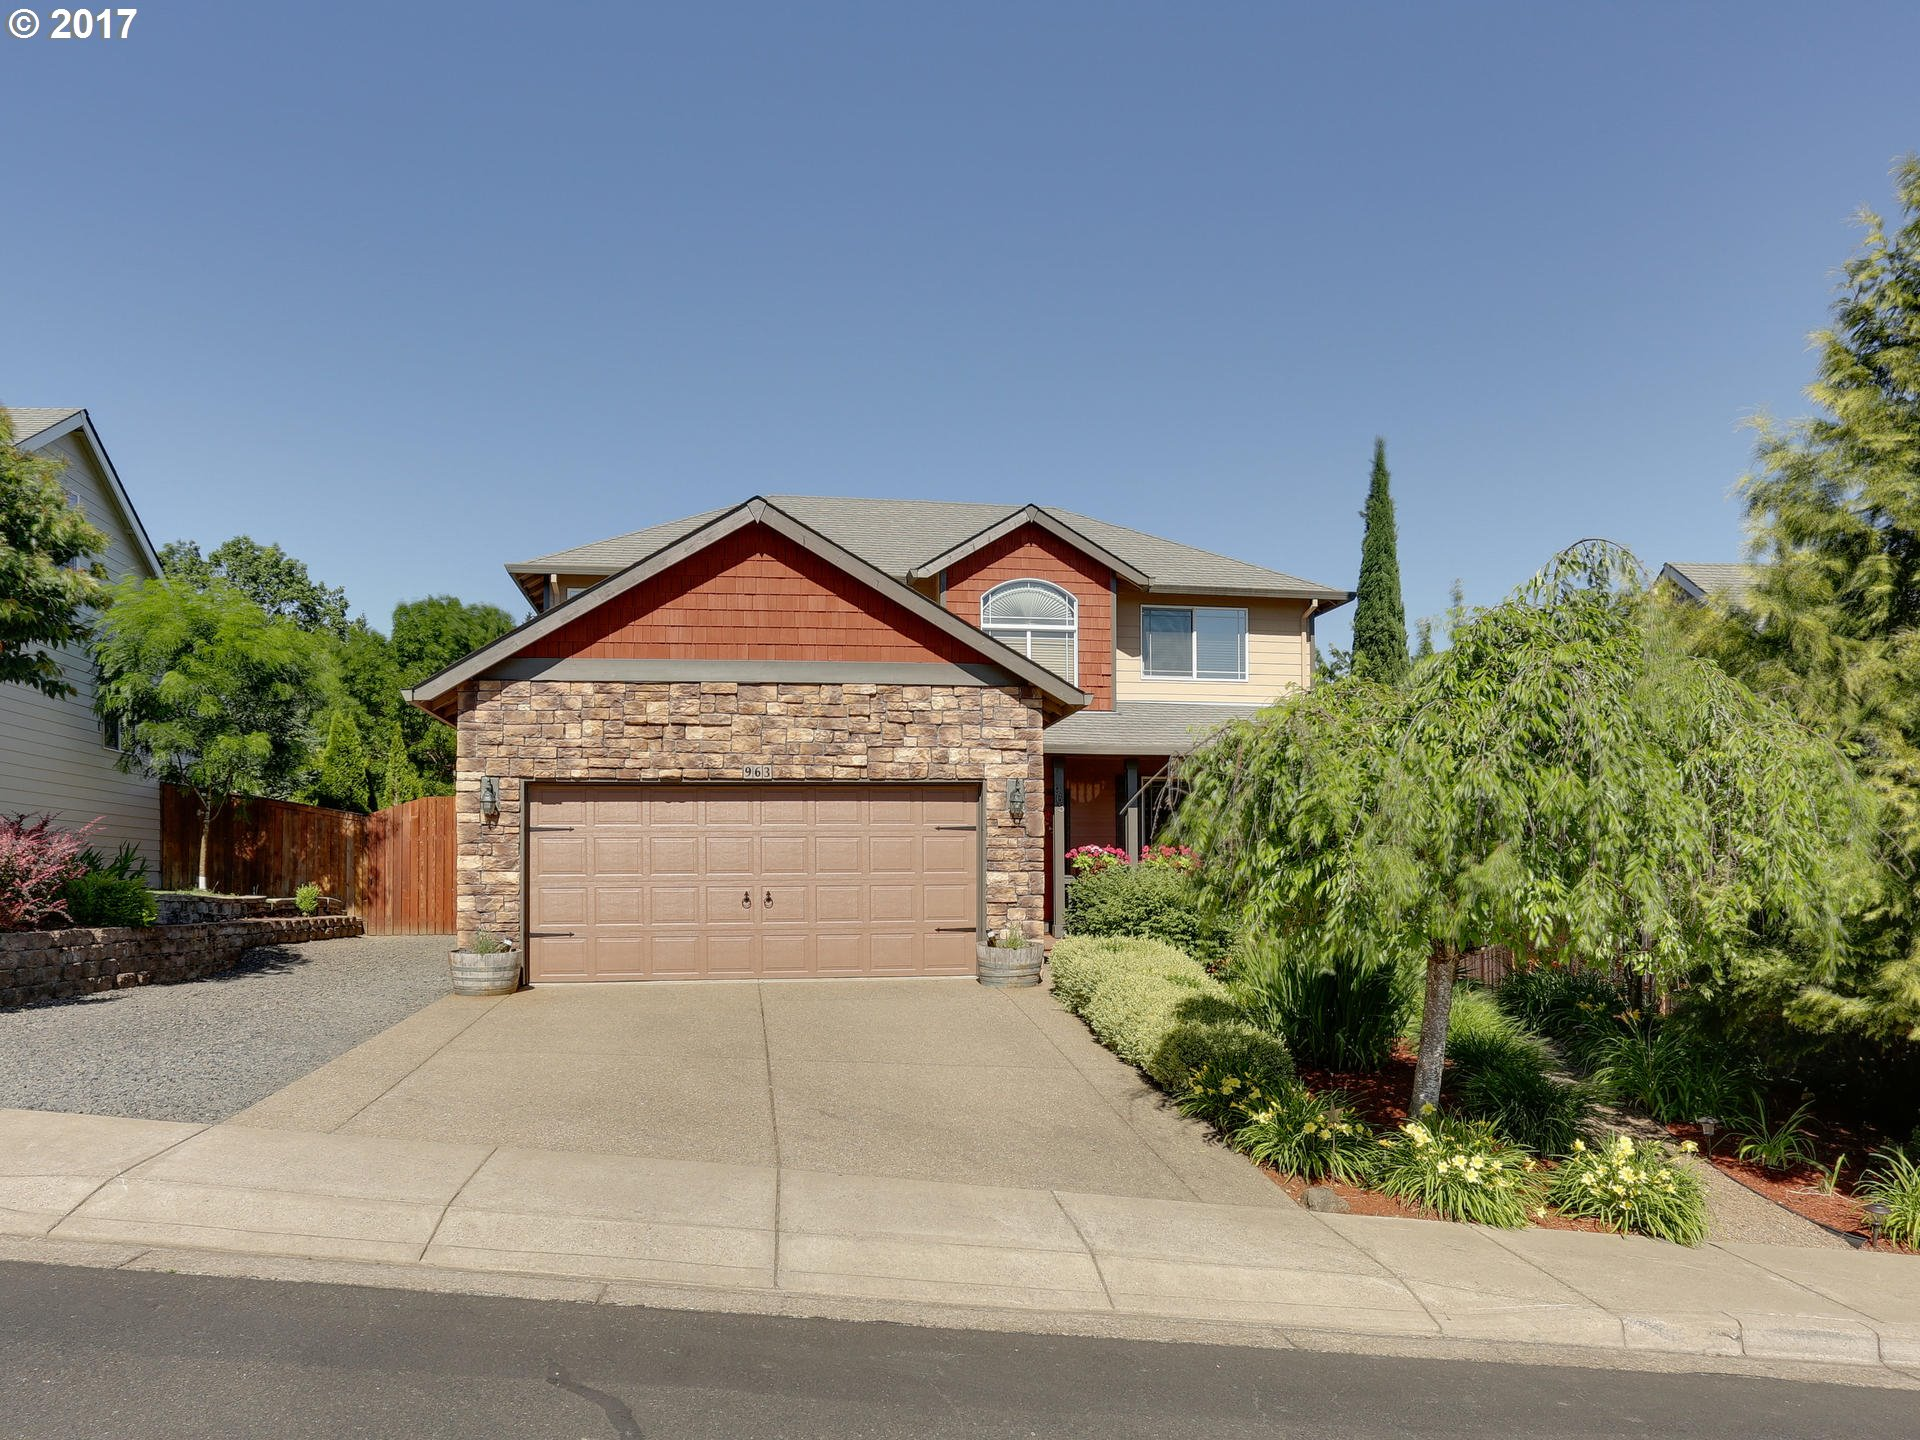 963 SW VIEW CREST DR, Dundee, OR 97115